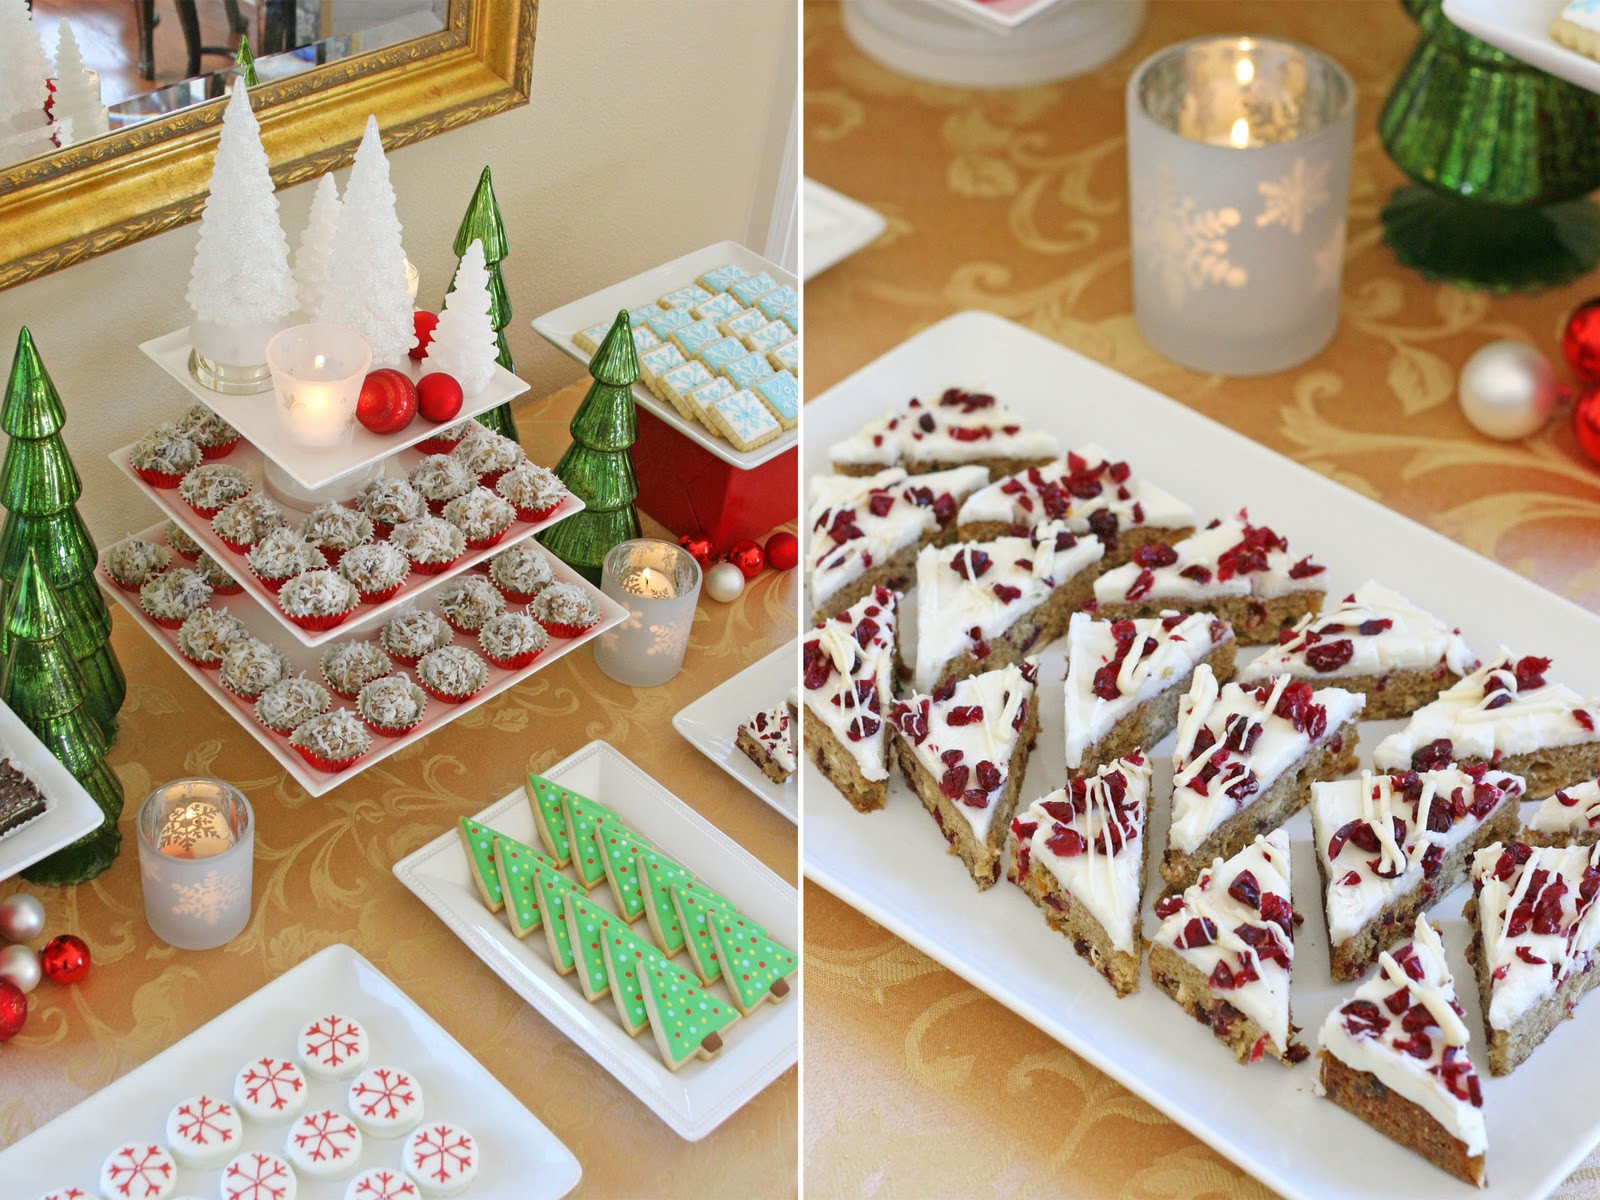 Christmas Desserts Party  Classic Holiday Dessert Table Glorious Treats